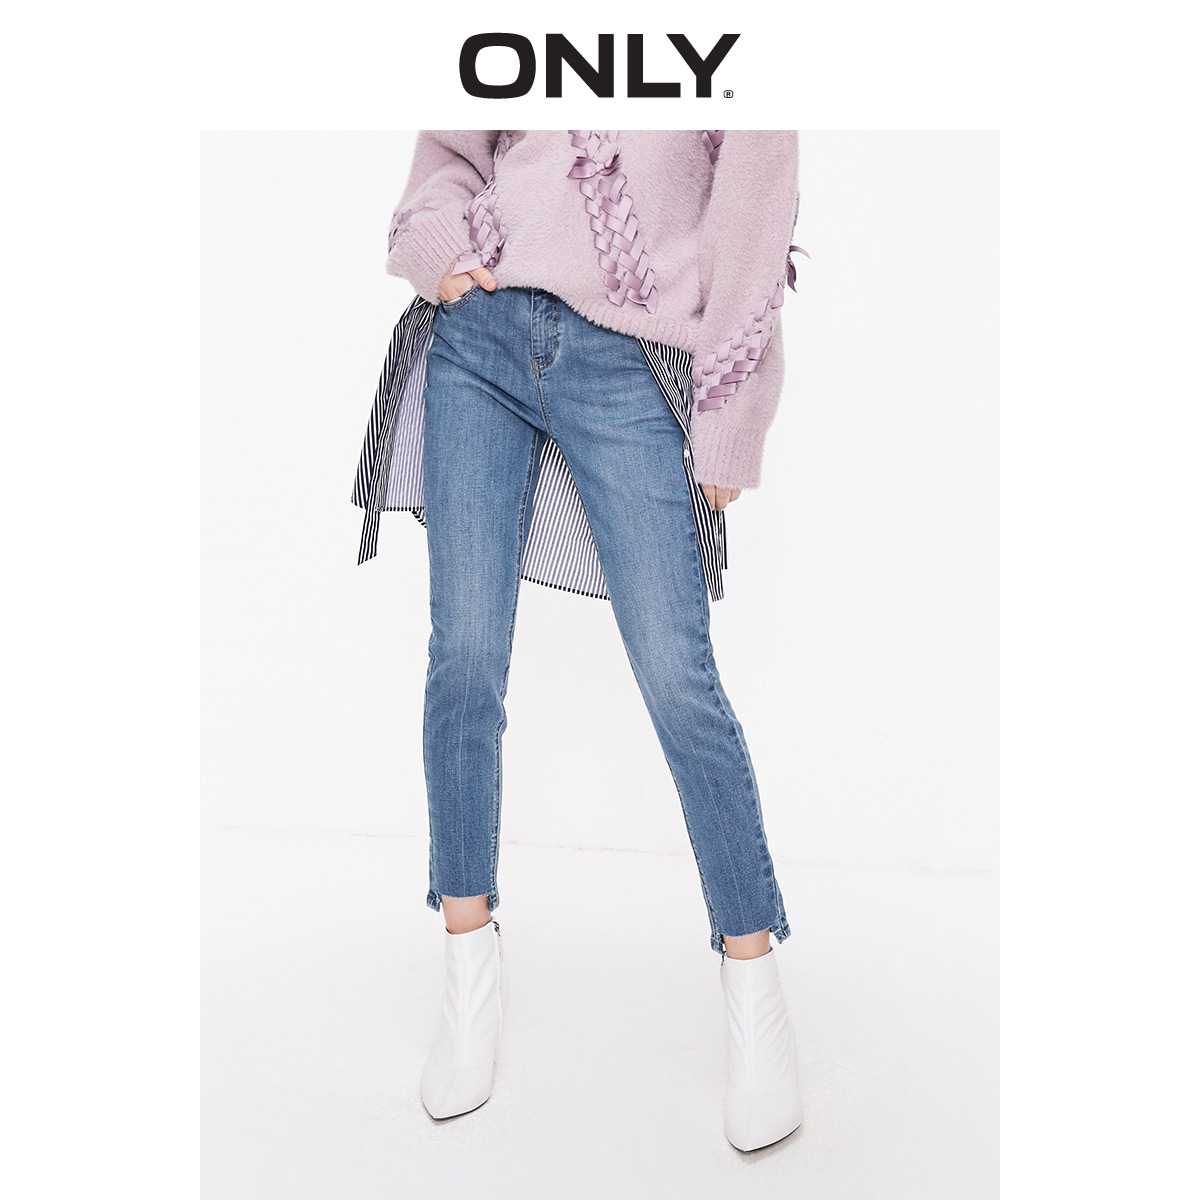 ONLY 2019 Spring Summer New Women's Low-rise Skinny Crop   Jeans   |119149527